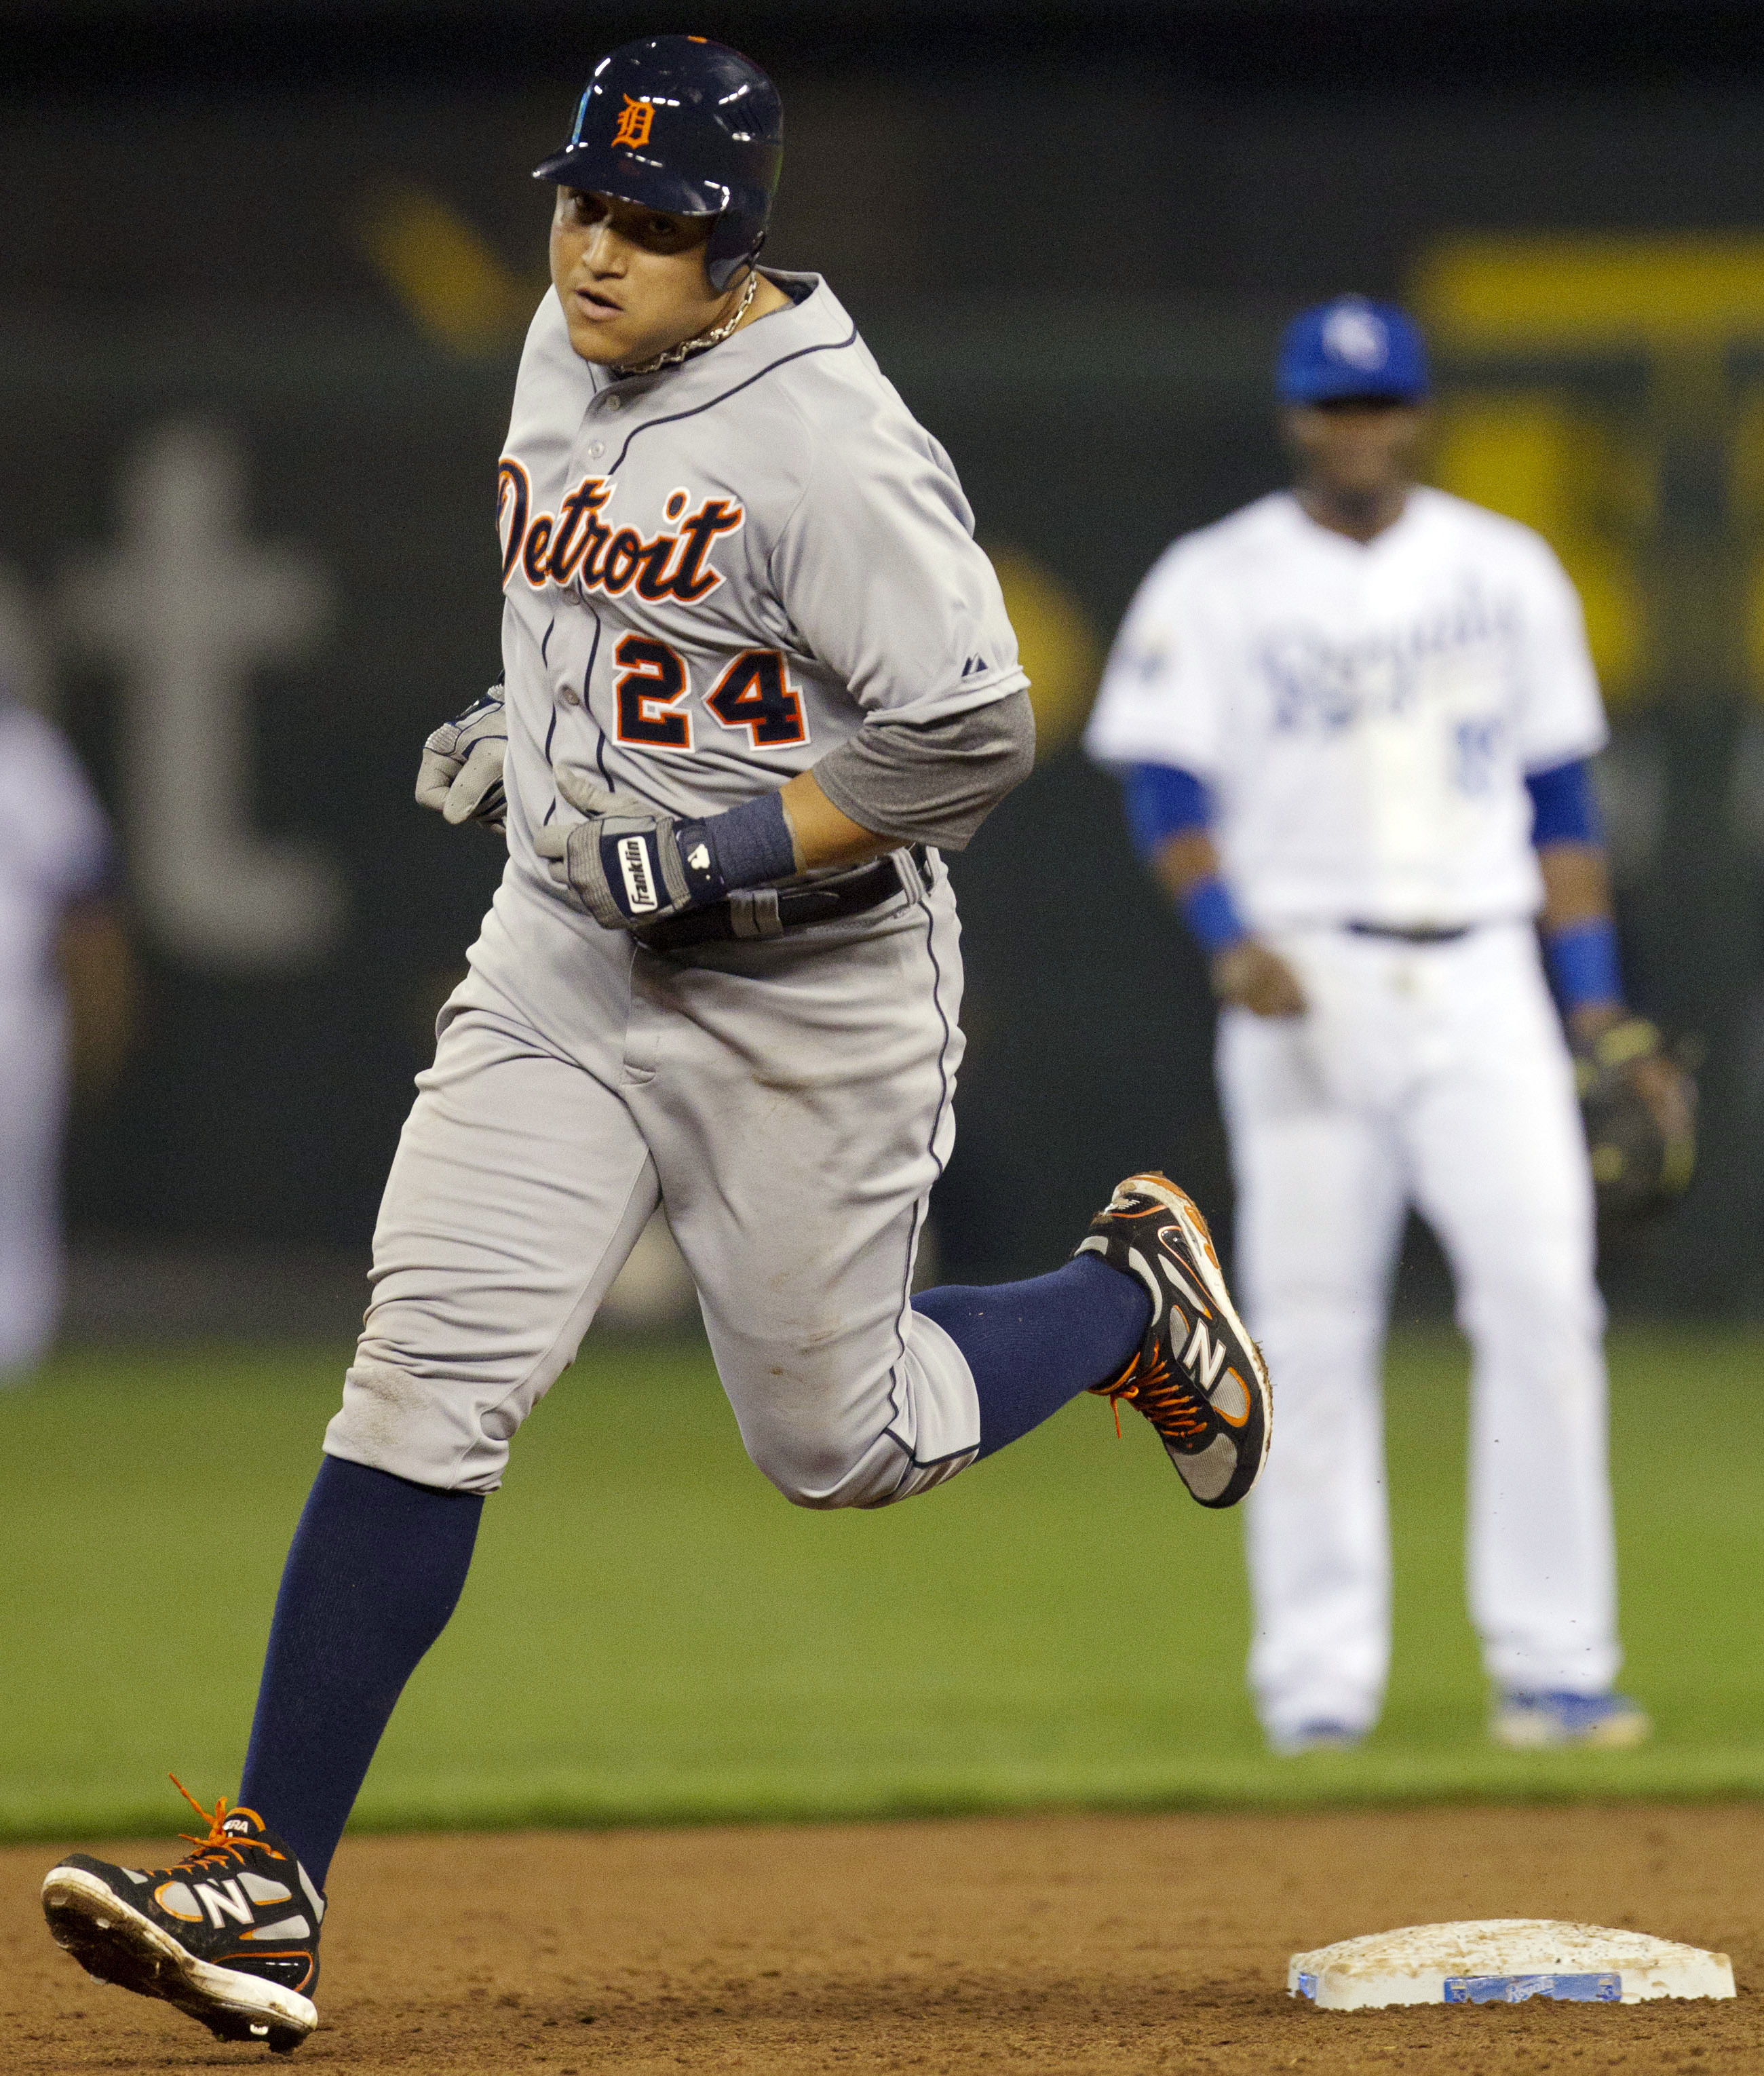 Miguel Cabrera rounds the bases after hitting his major league-leading 44th home run. (AP)